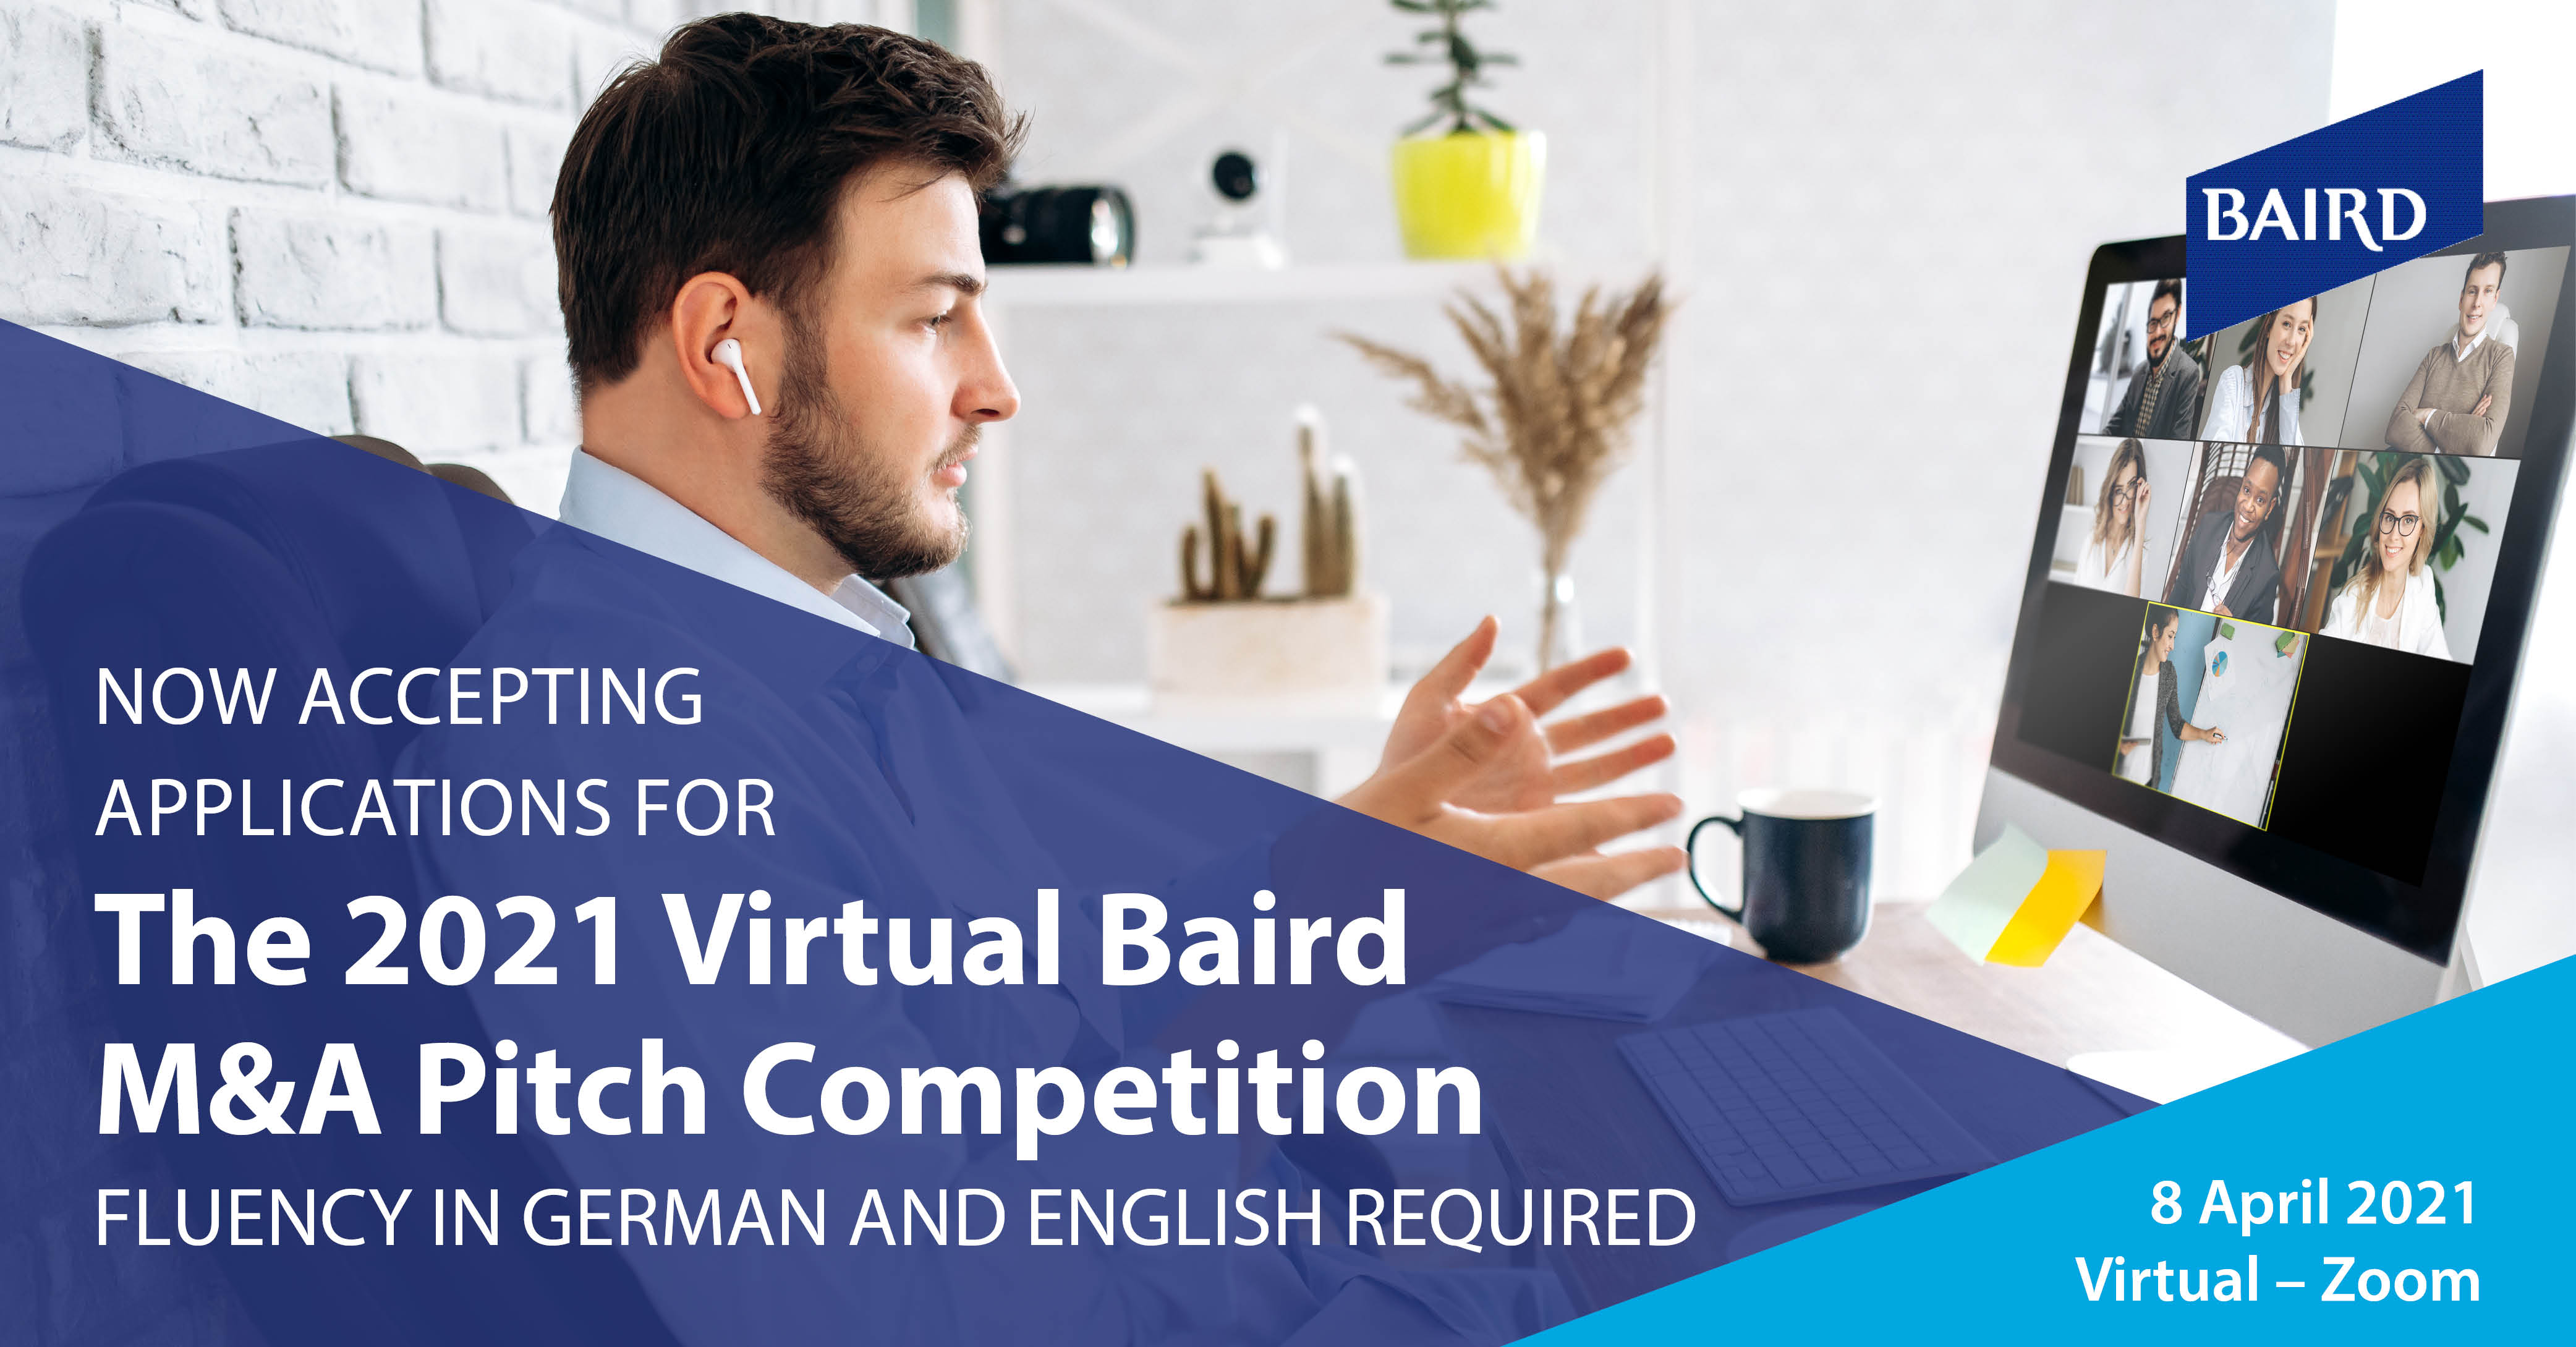 Baird's 2021 Virtual M&A Pitch Competition + Networking Event 8 April 2021